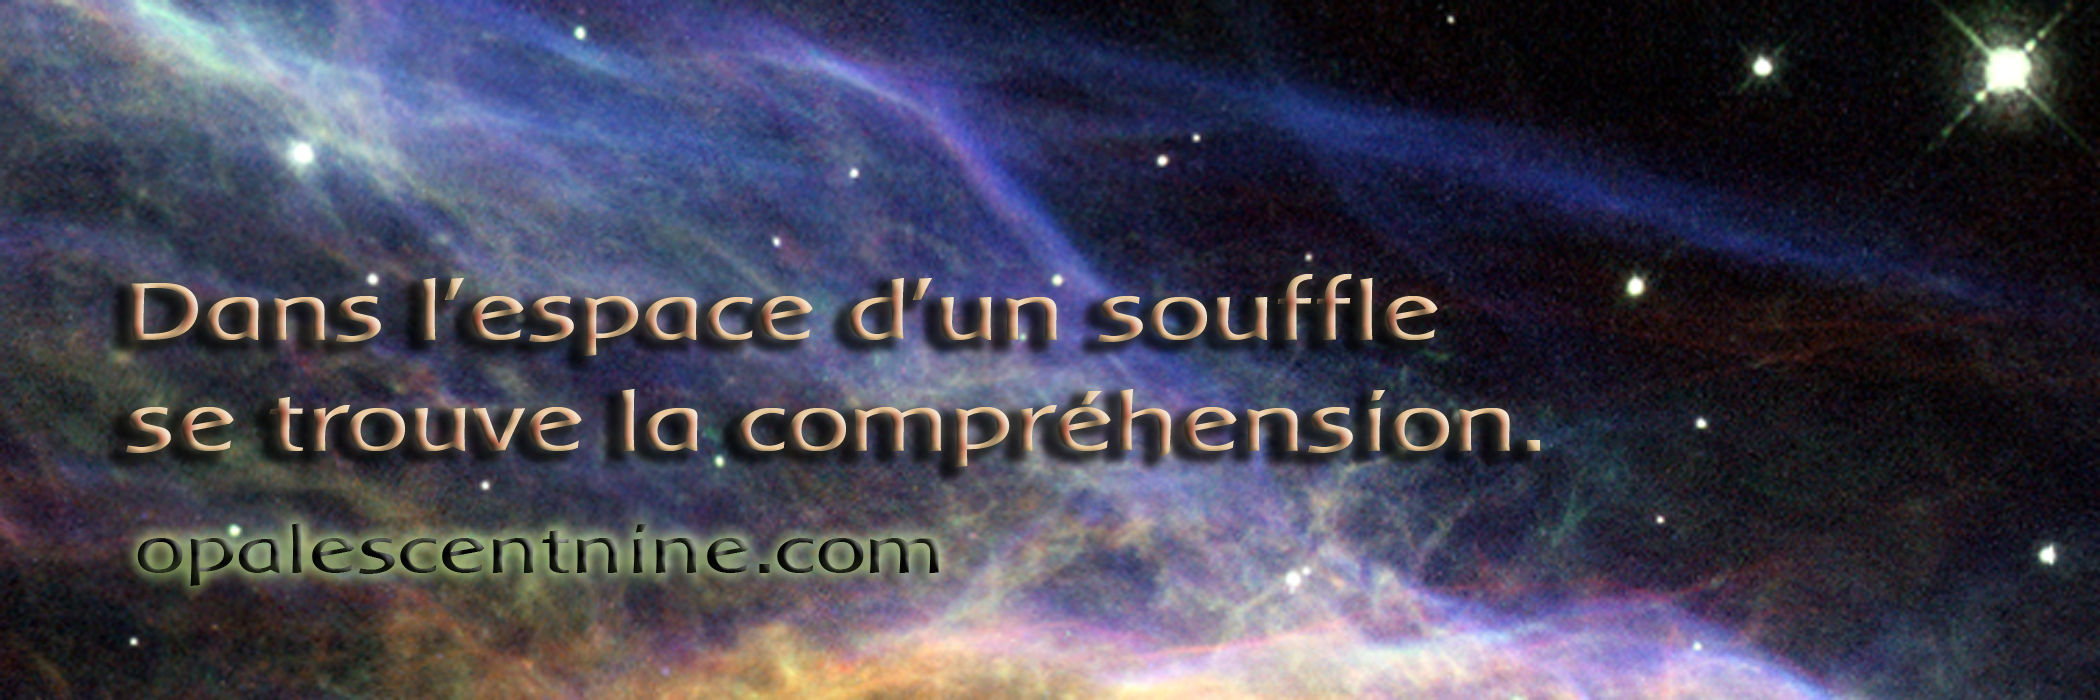 Pleiadian Soul bumper sticker French